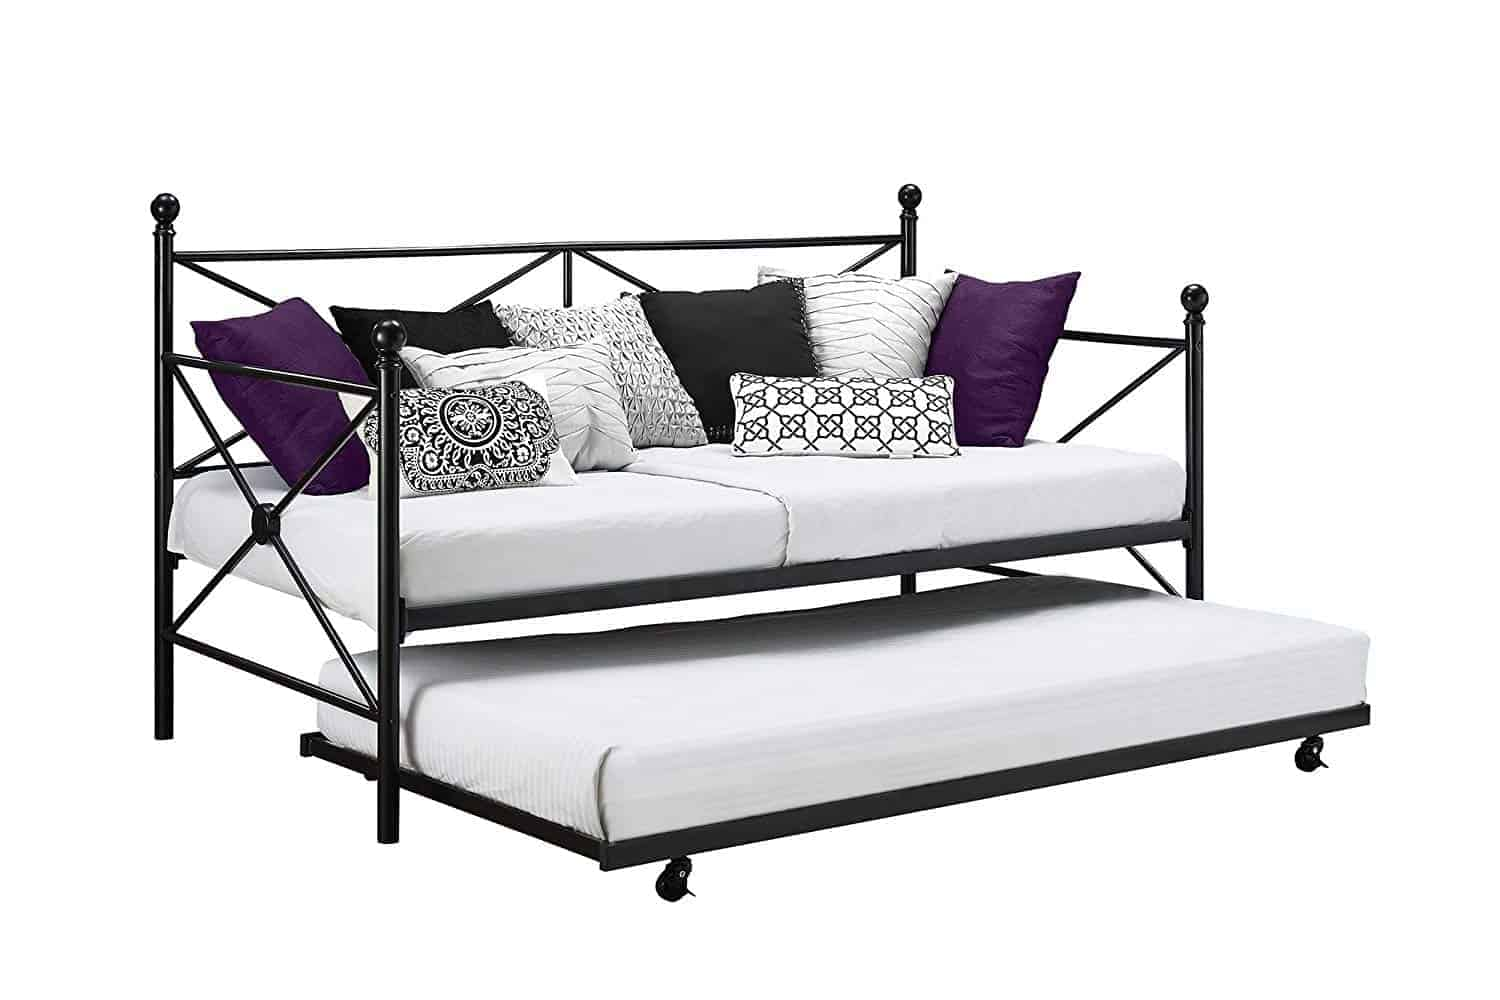 The Ultimate Guide To Pop Up Trundle Beds For Adults And Seniors